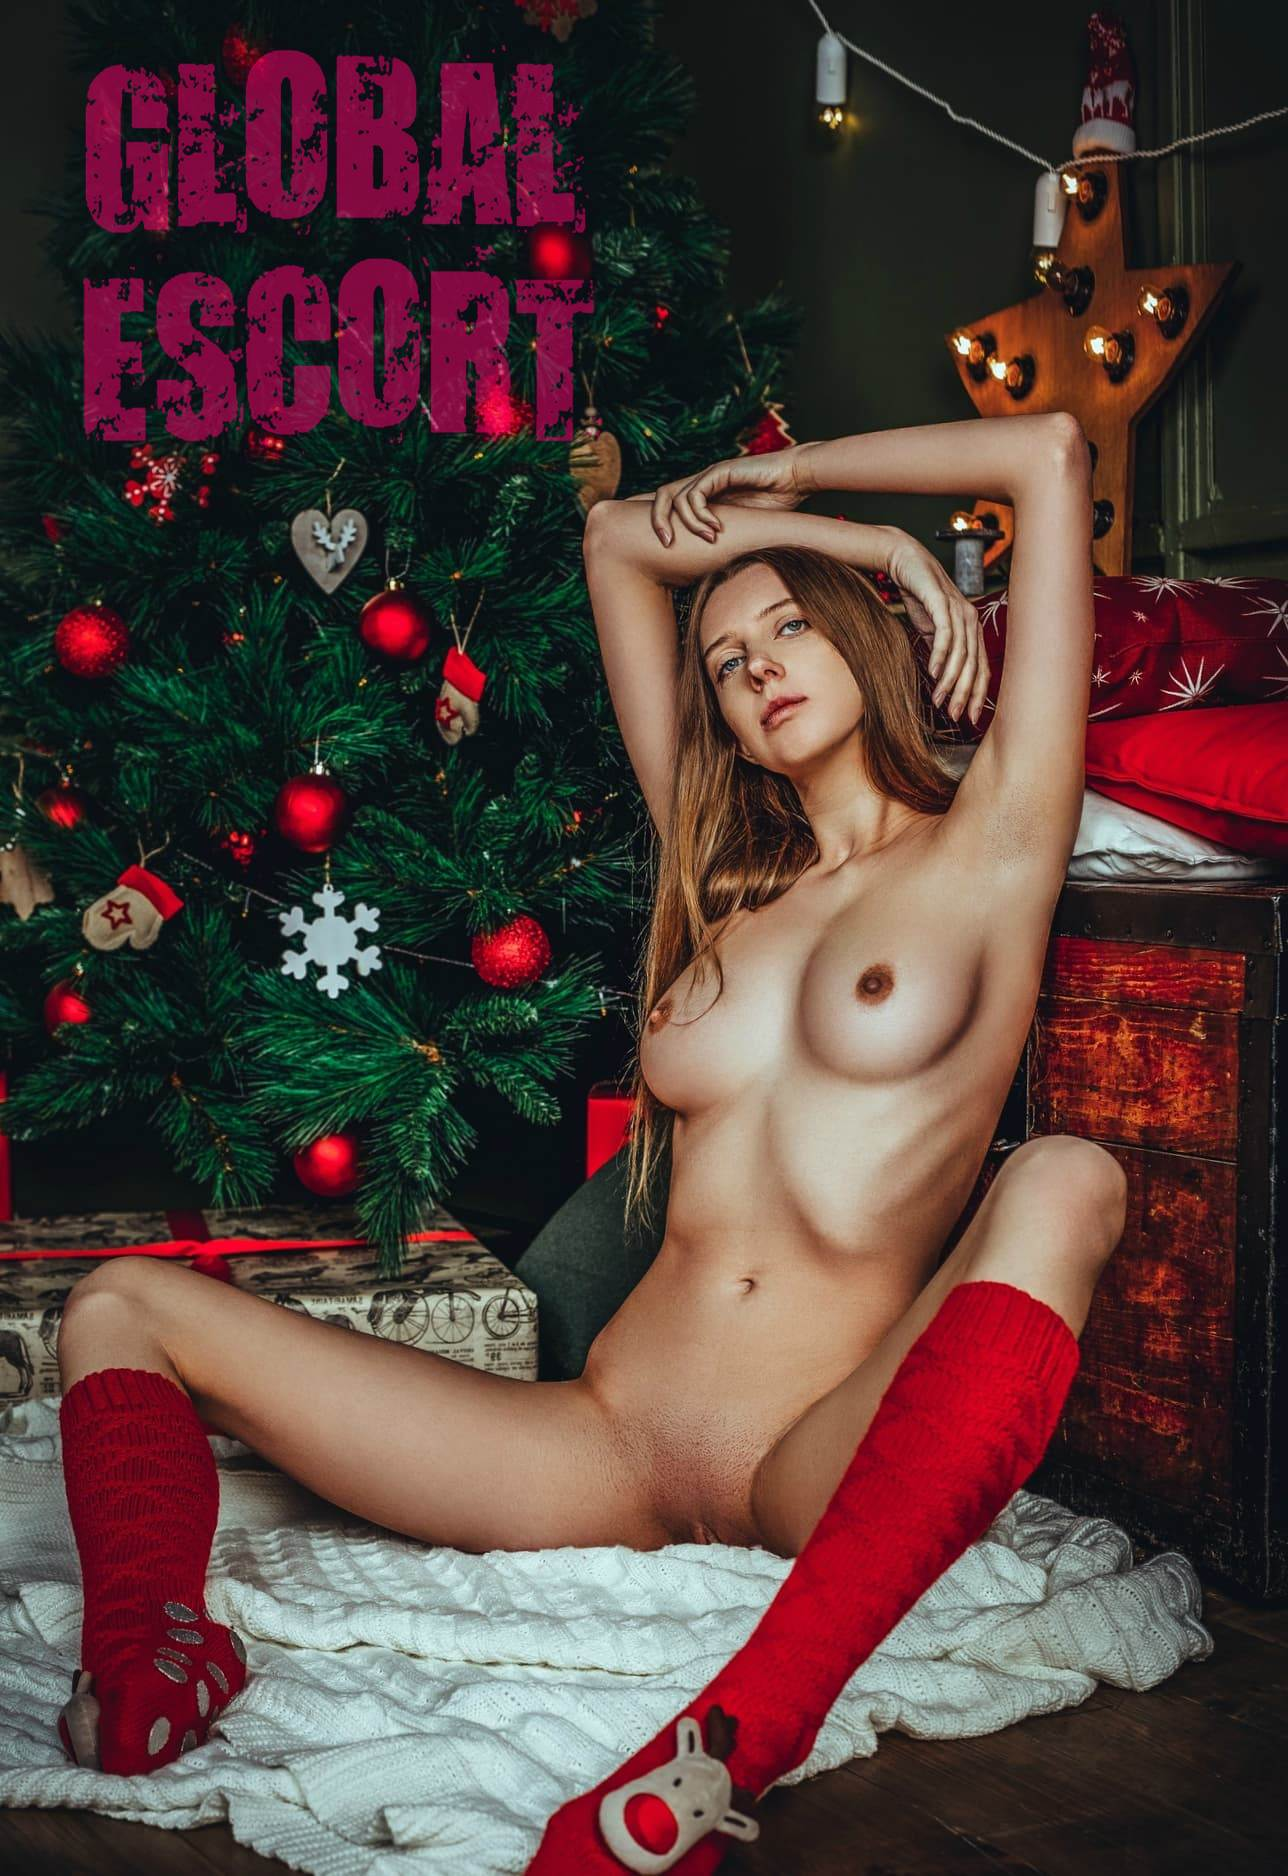 naked escort model sits near a Christmas tree and spreads her legs on a white carpet